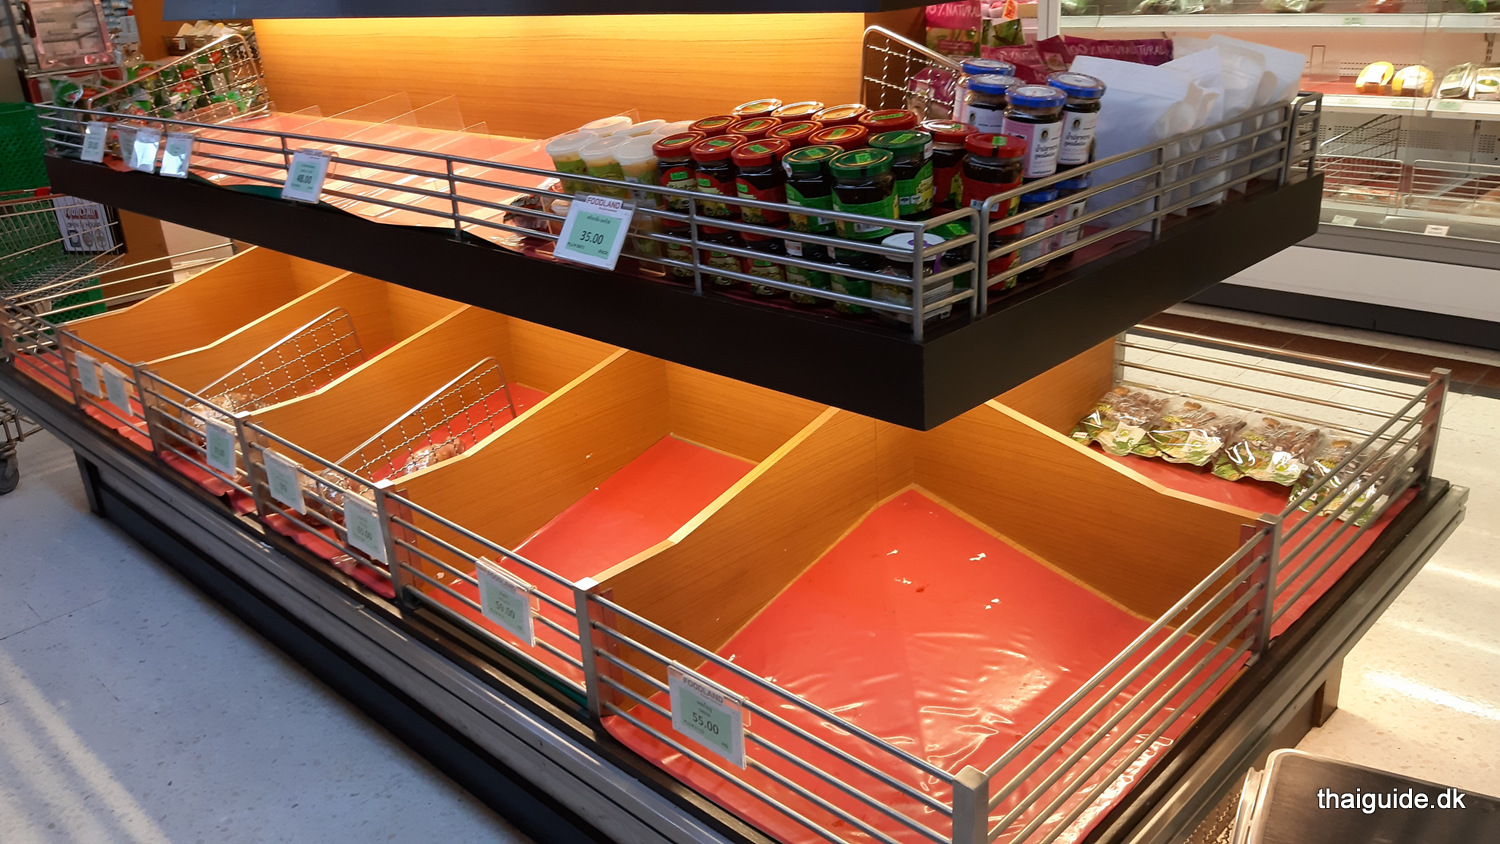 www.thaiguide.dk/images/forum/covid19/foodland-16032020-5.jpg